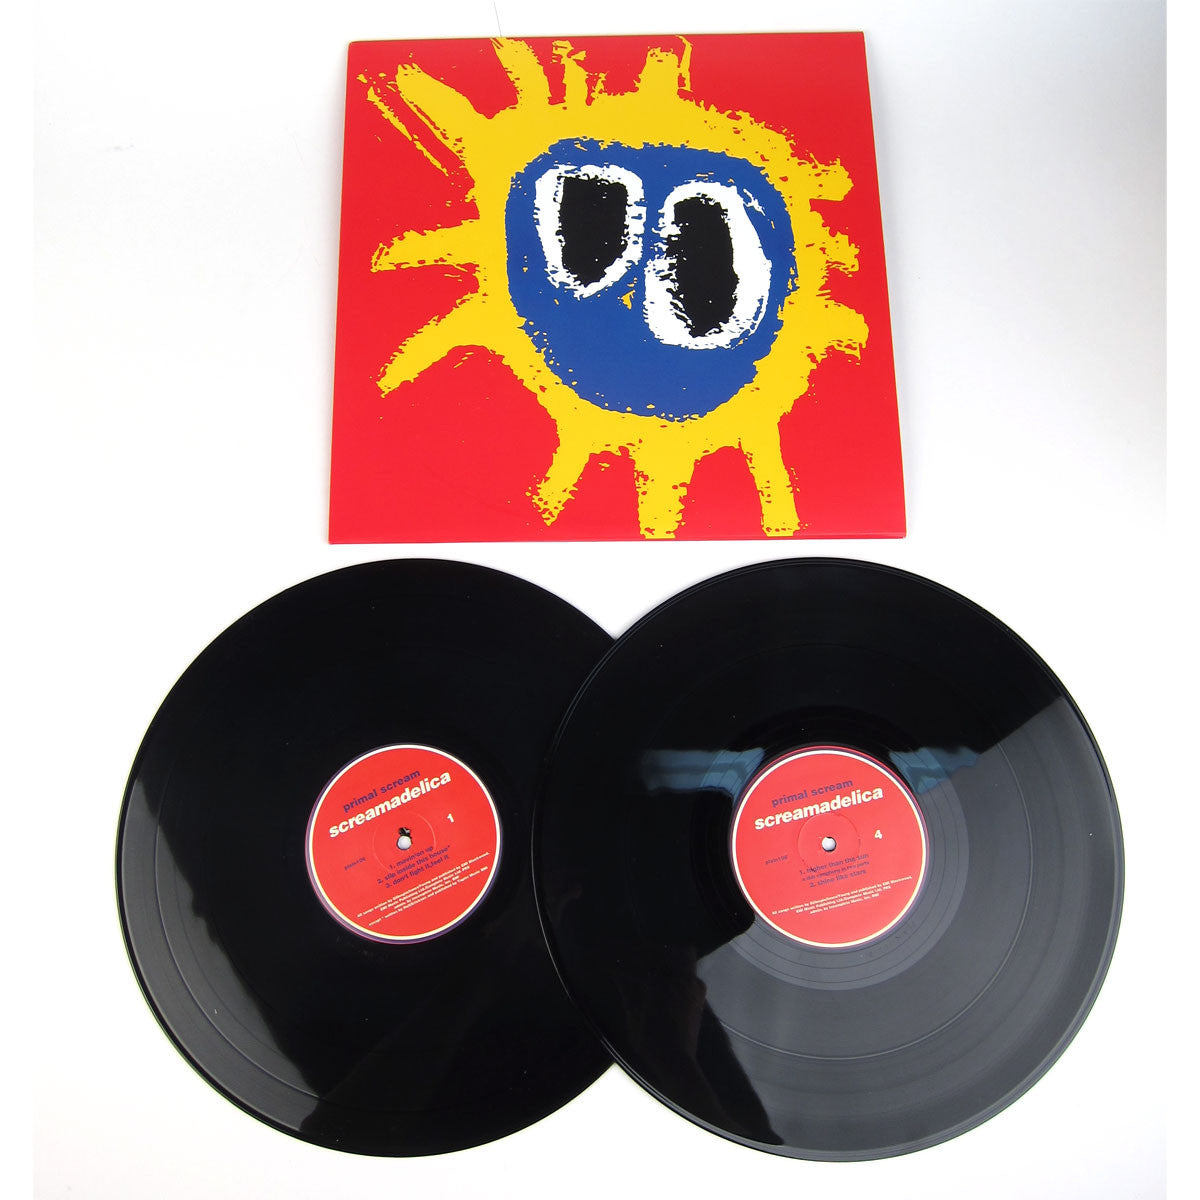 Primal Scream: Screamadelica (180g) Vinyl 2LP